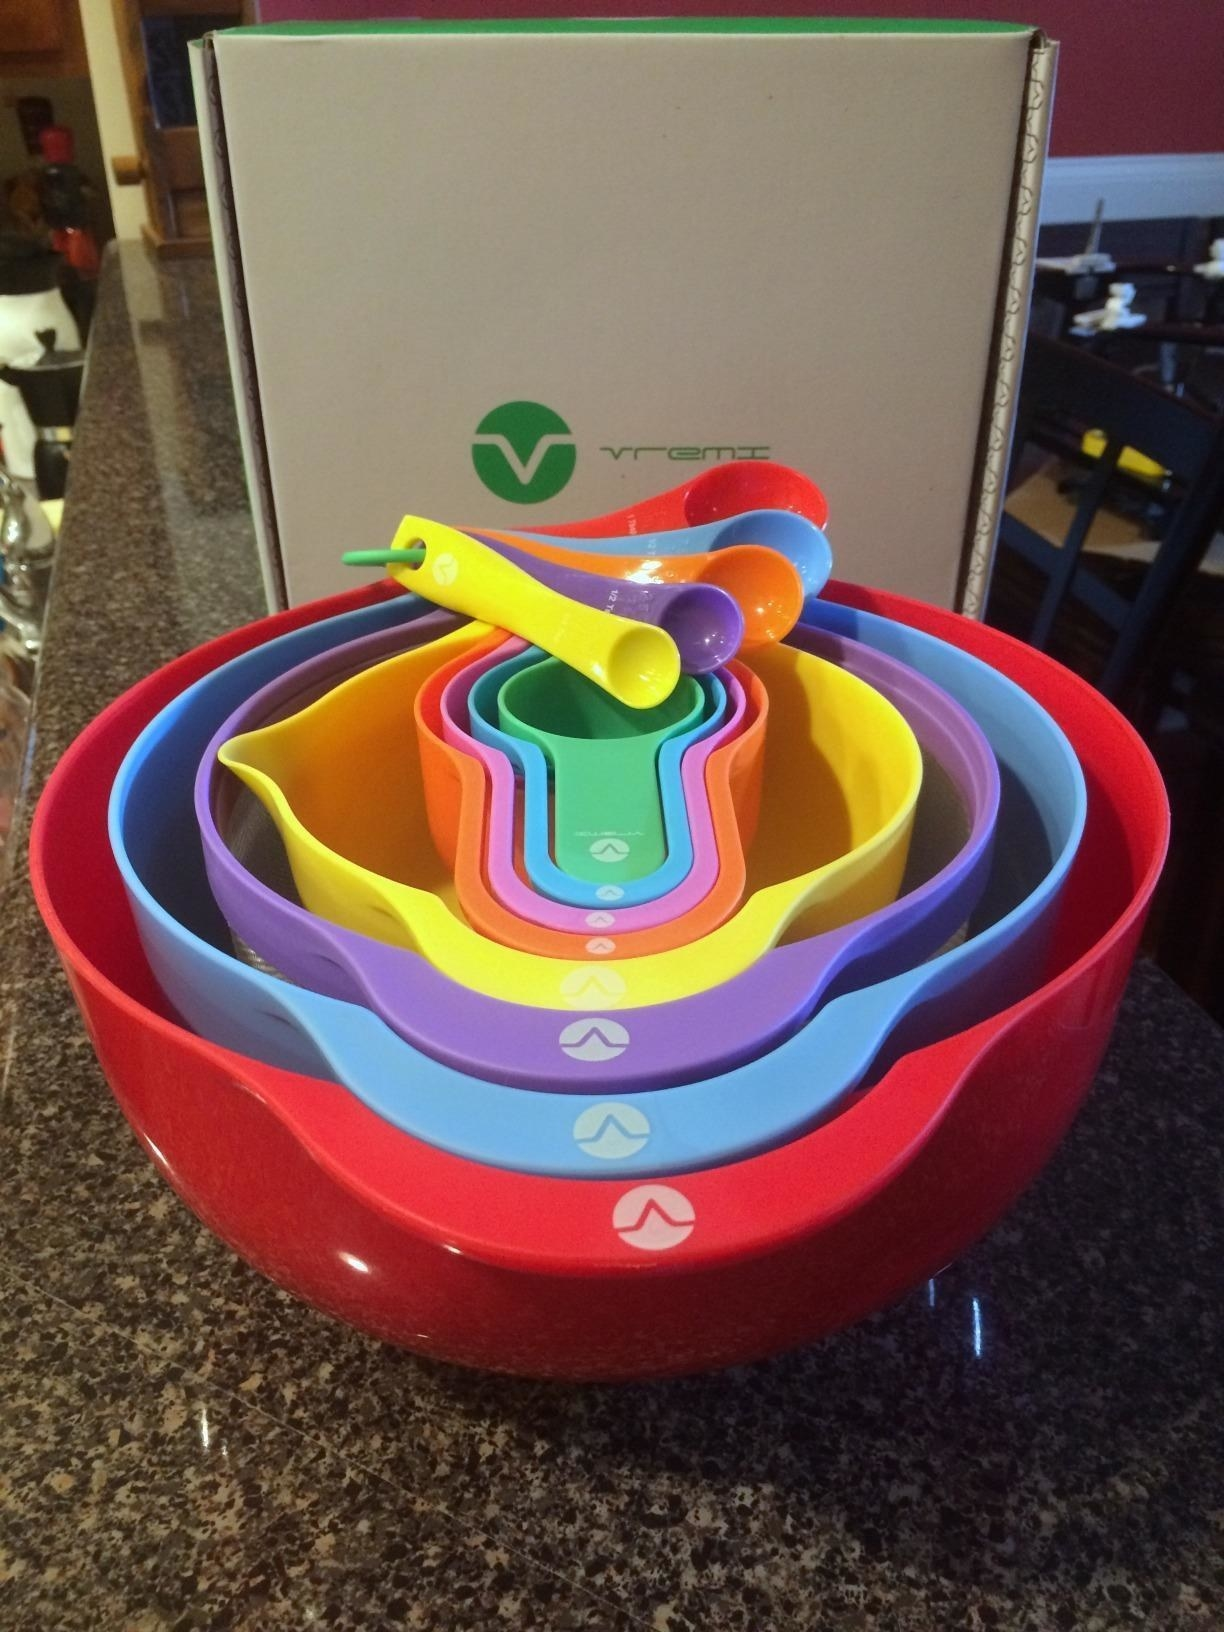 reviewer image of the complete 13 nesting mixing and measuring bowls on a kitchen counter